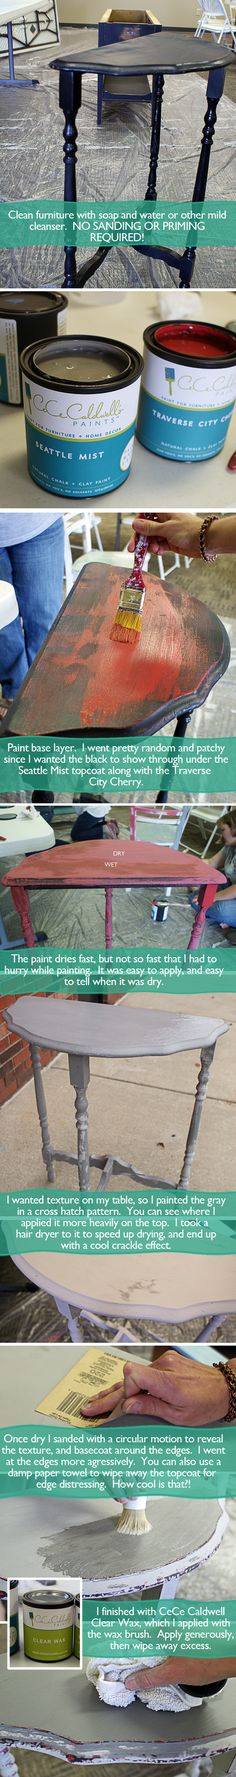 #CeceCaldwell Chalk and Clay Paint #DIY Table Makeover